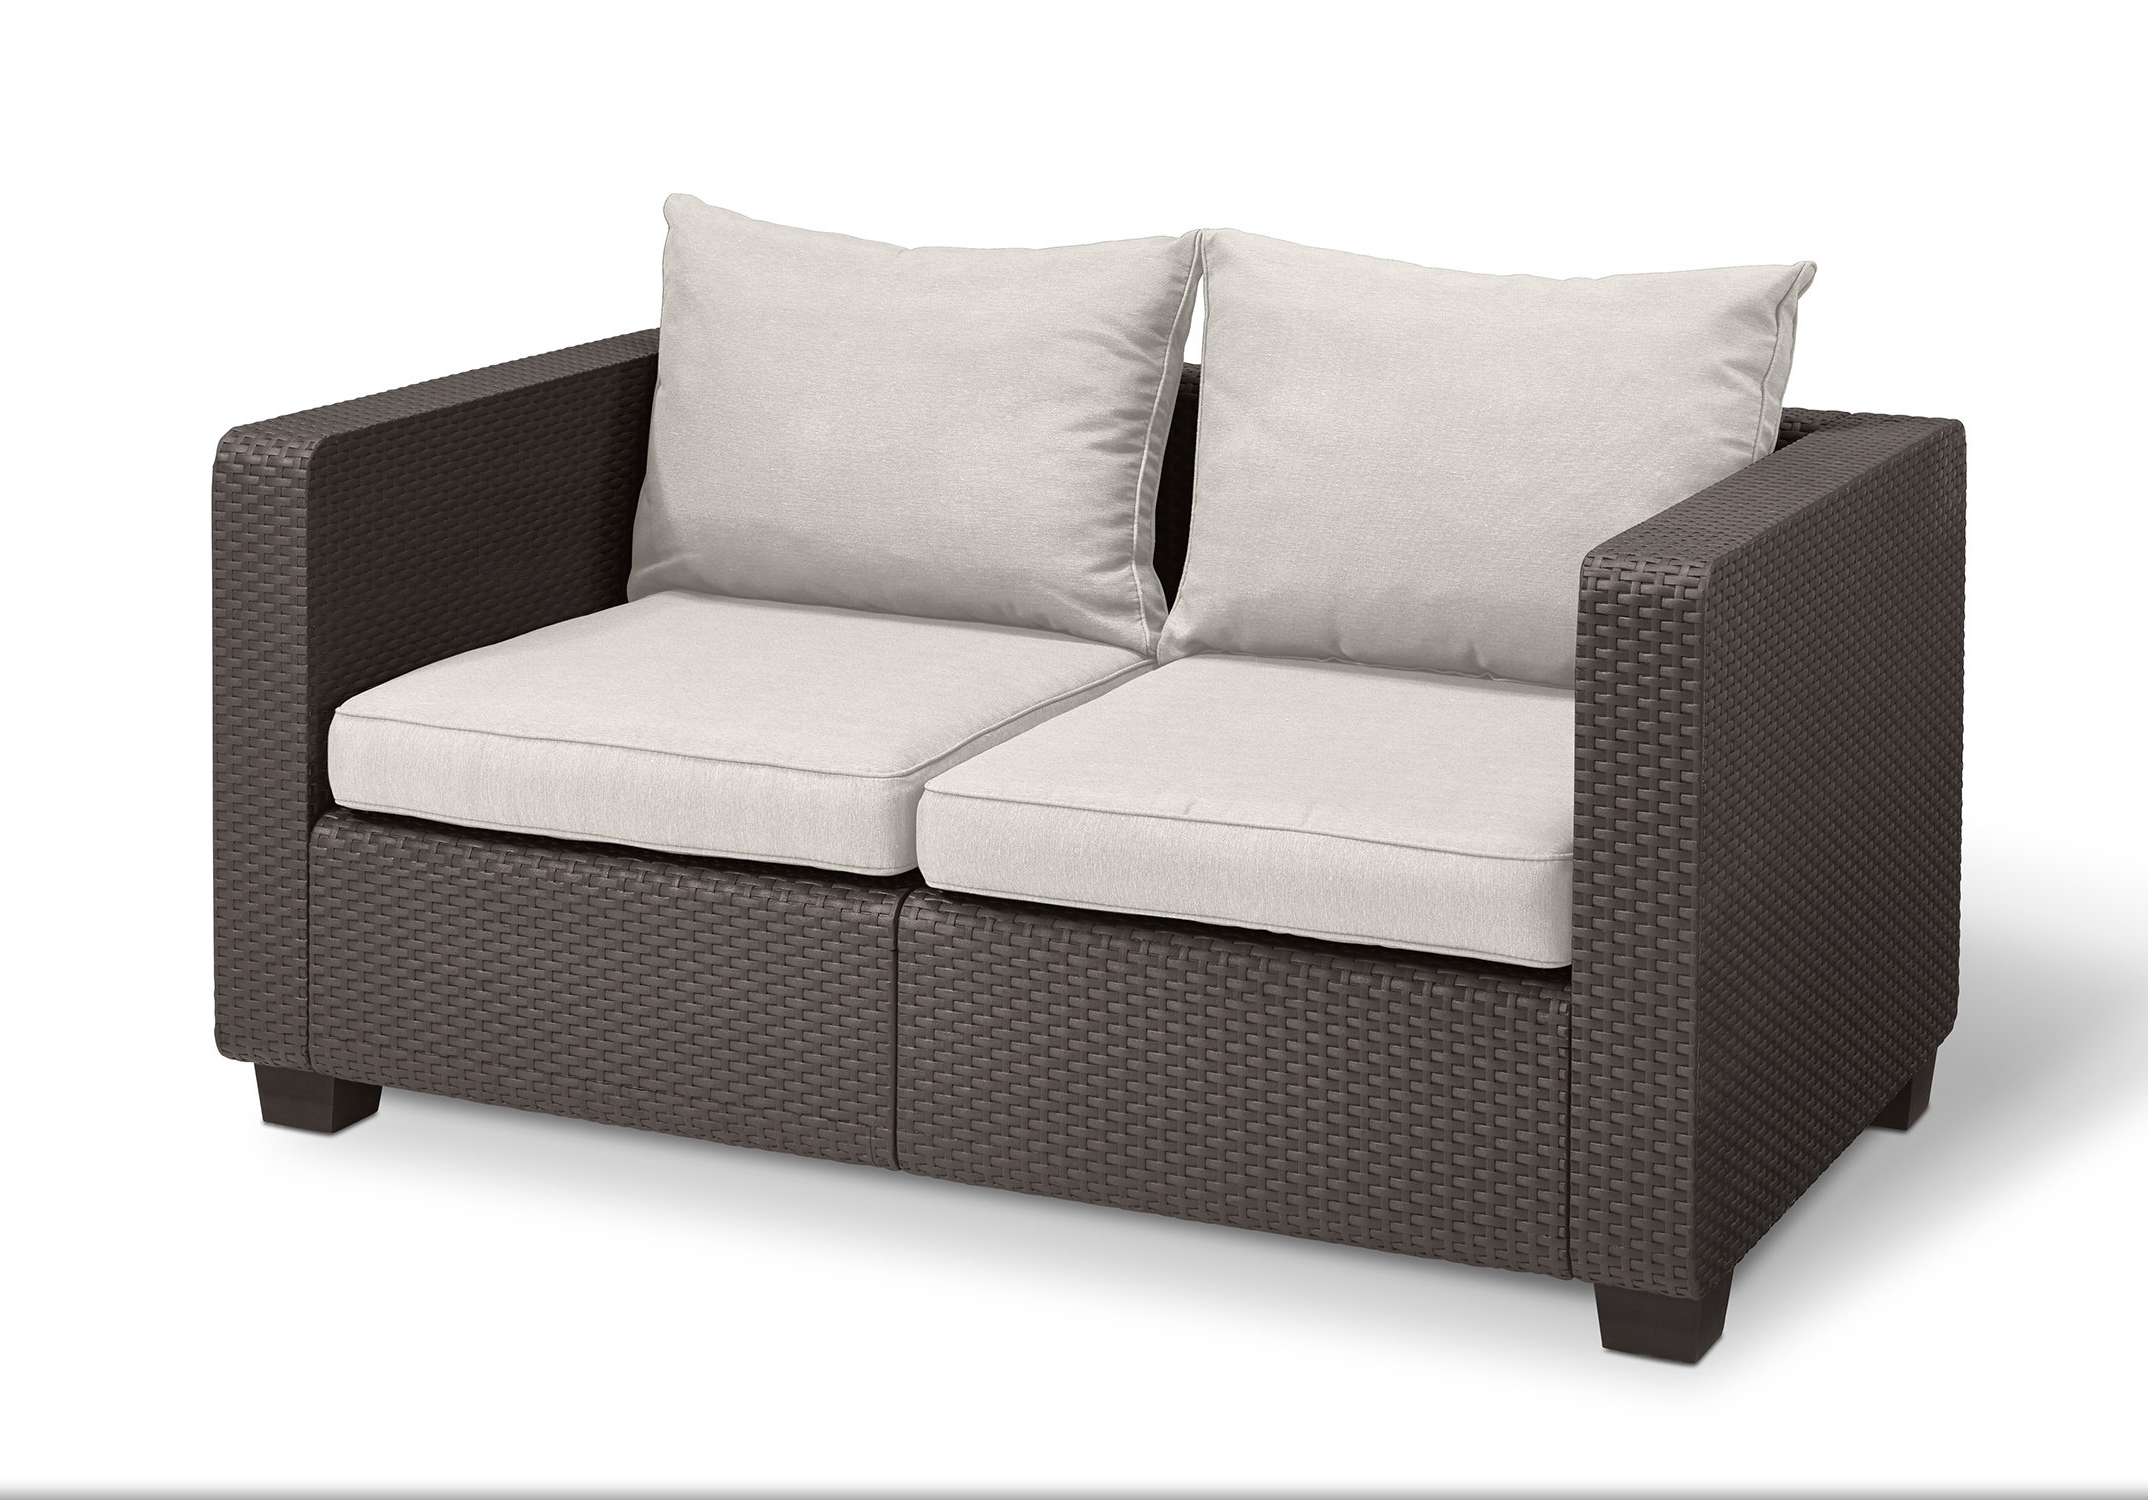 Most Recently Released Halloran Loveseat With Sunbrella Cushions Intended For Clifford Loveseats With Cushion (View 14 of 20)